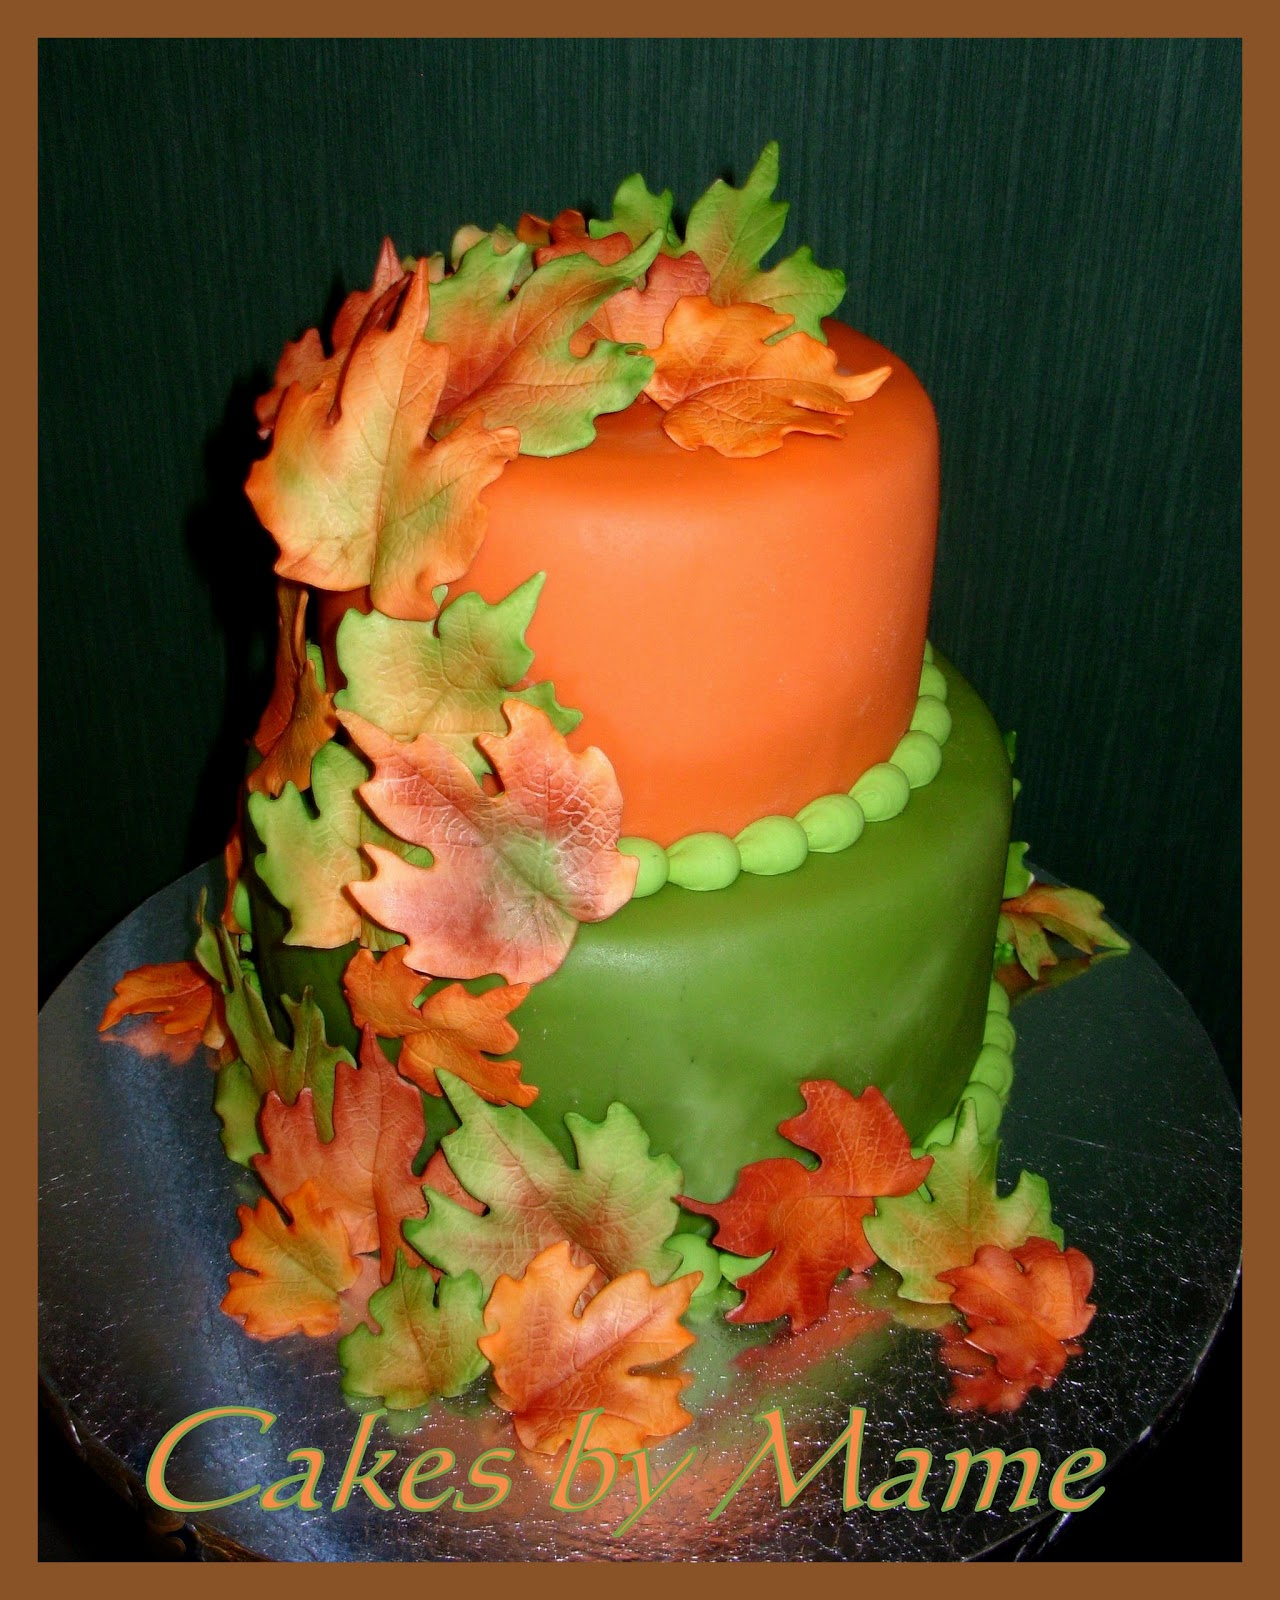 Sugar teachers cake decorating and sugar art tutorials for Autumn cake decoration